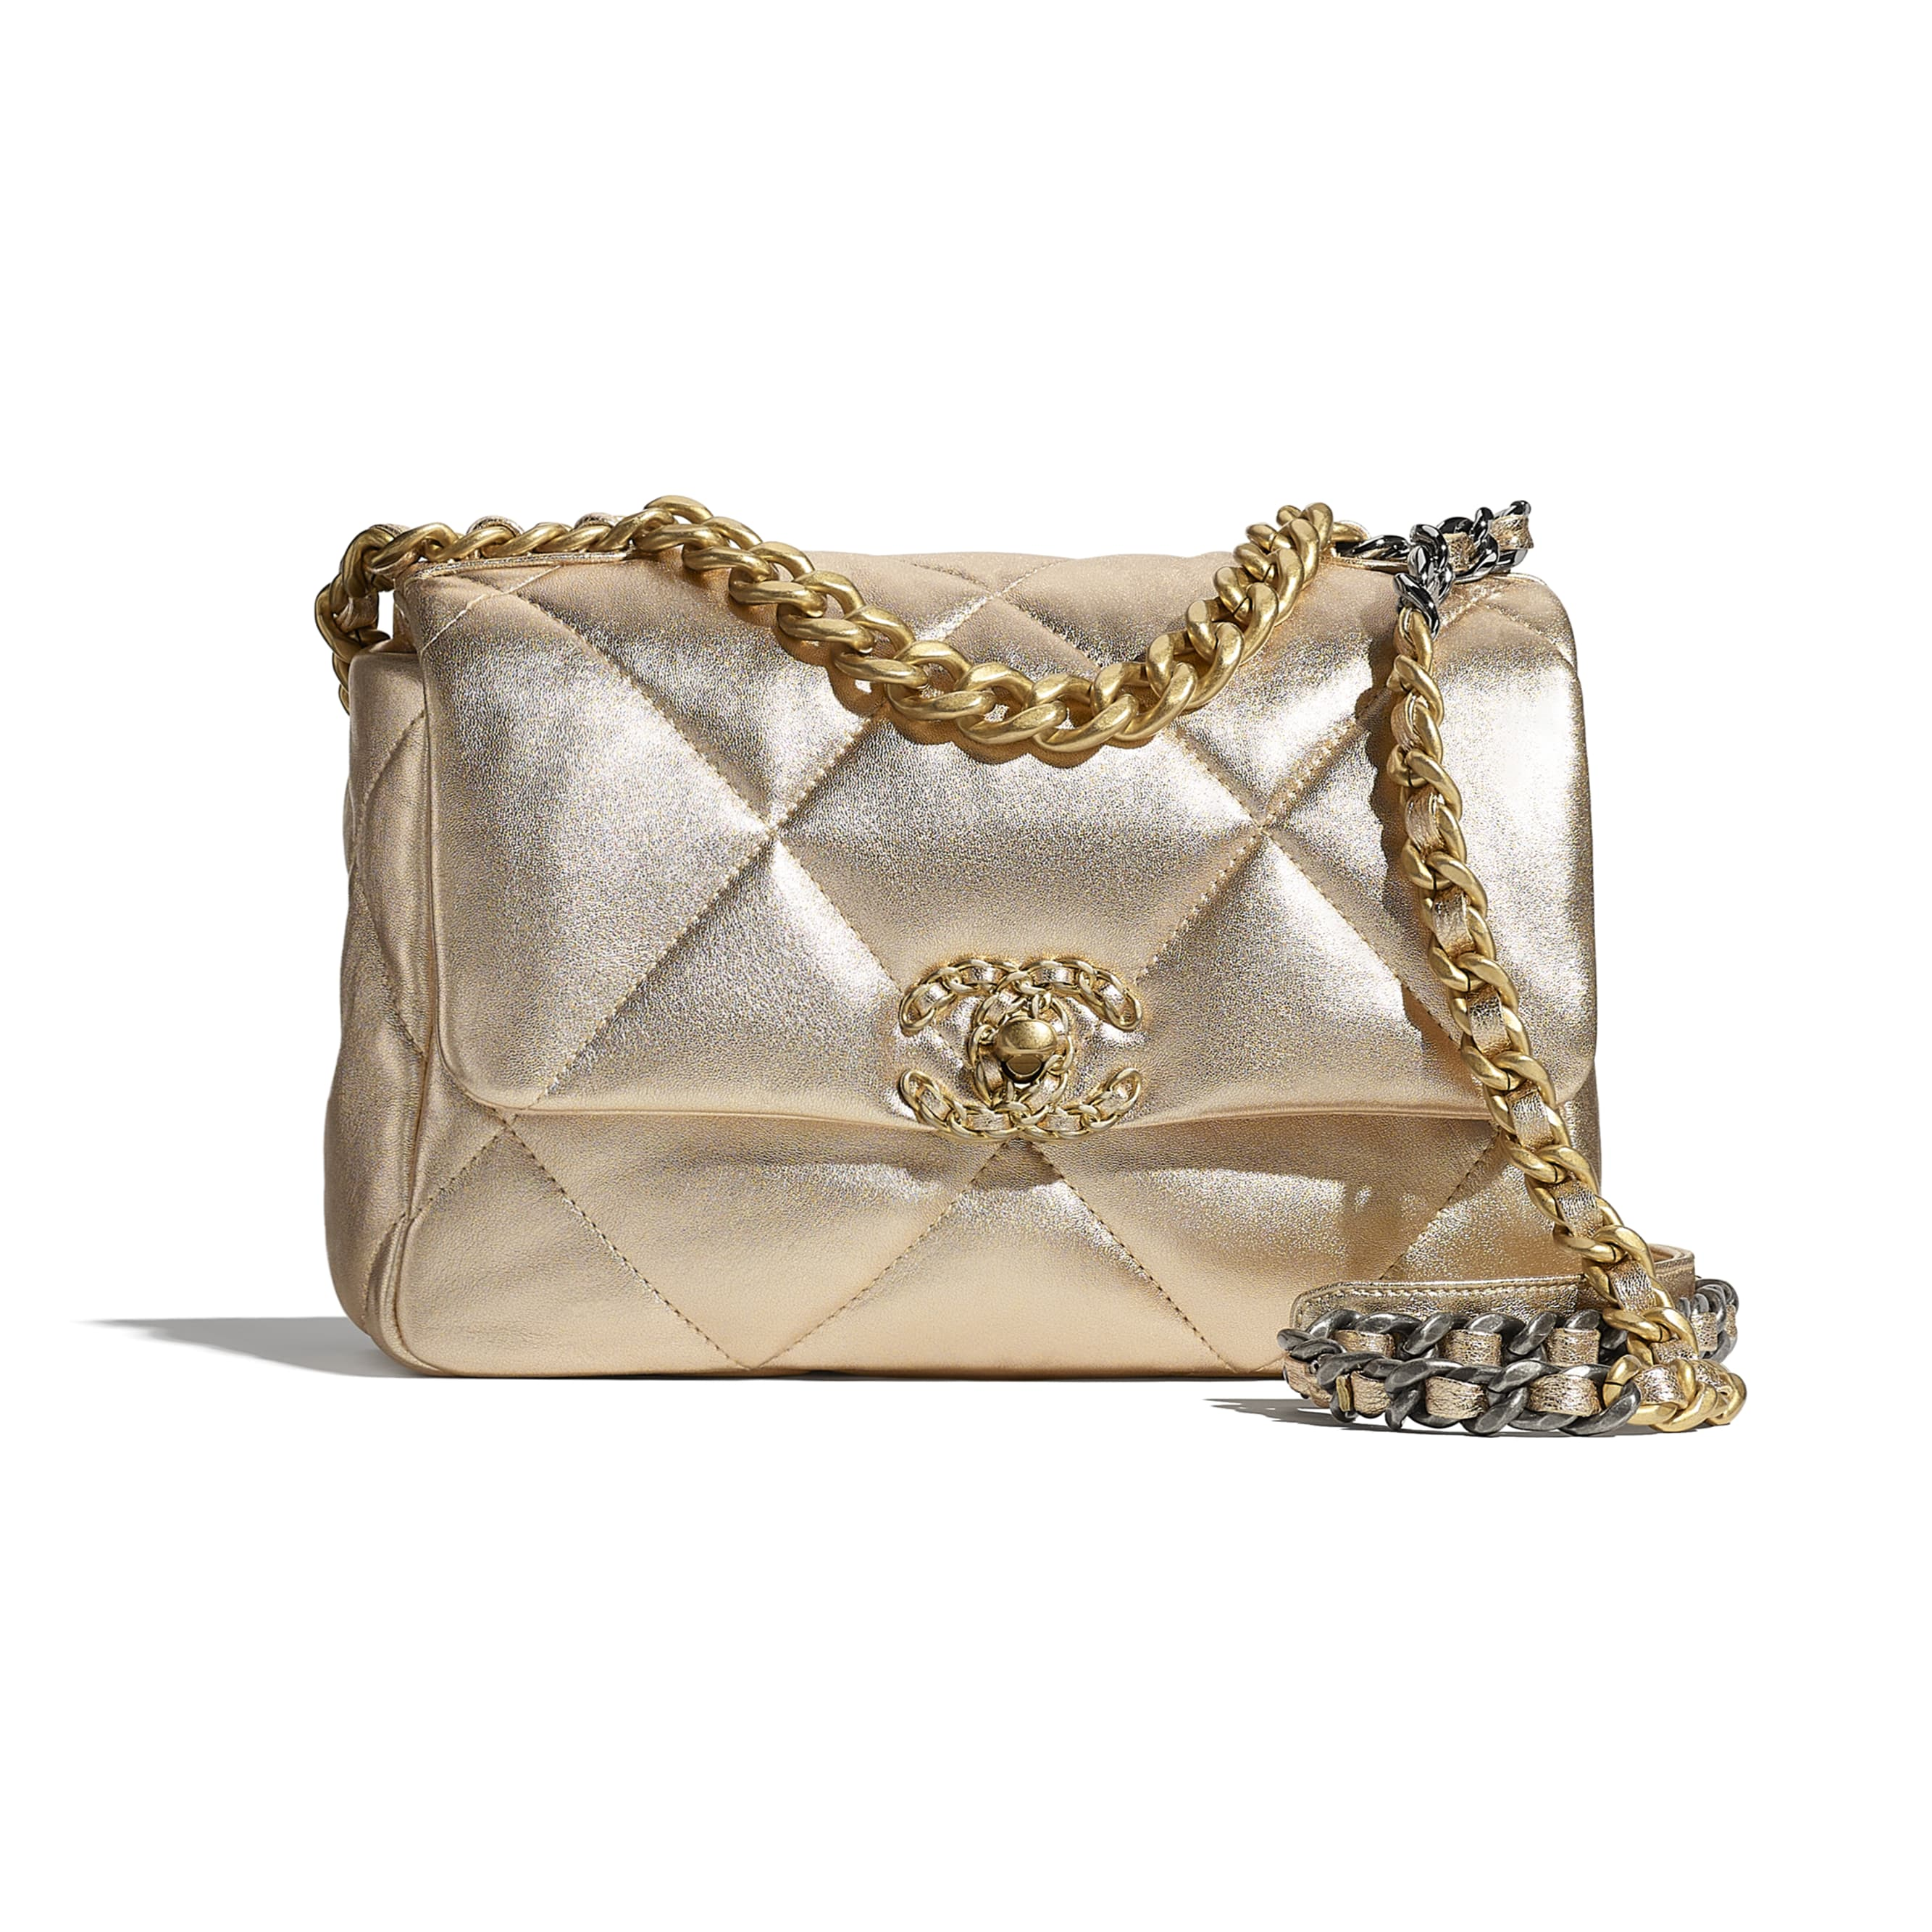 CHANEL 19 Handbag - Gold - Metallic Lambskin, Gold-Tone, Silver-Tone & Ruthenium-Finish Metal - CHANEL - Default view - see standard sized version